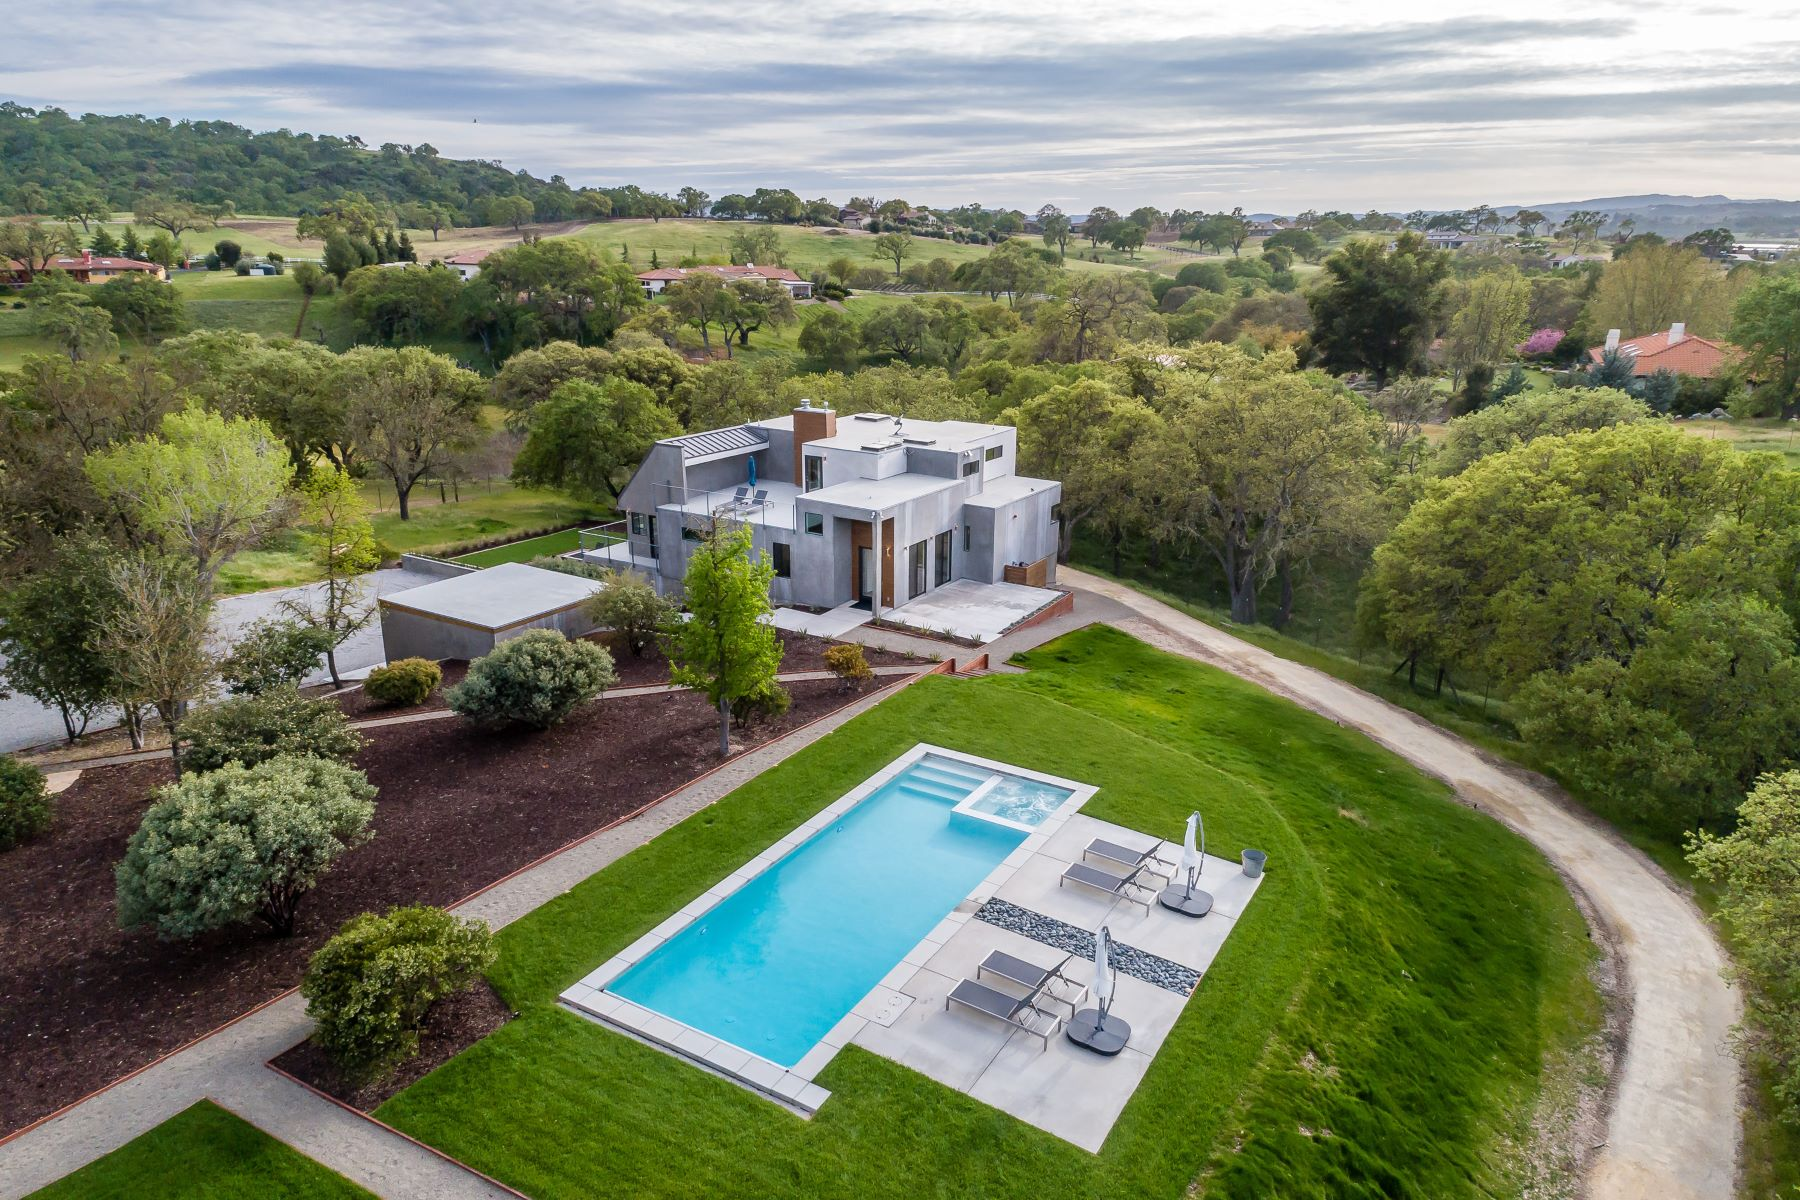 Single Family Homes for Sale at Ultimate Gatherings & Extravagant Entertaining 1475 Barley Grain Road Paso Robles, California 93446 United States